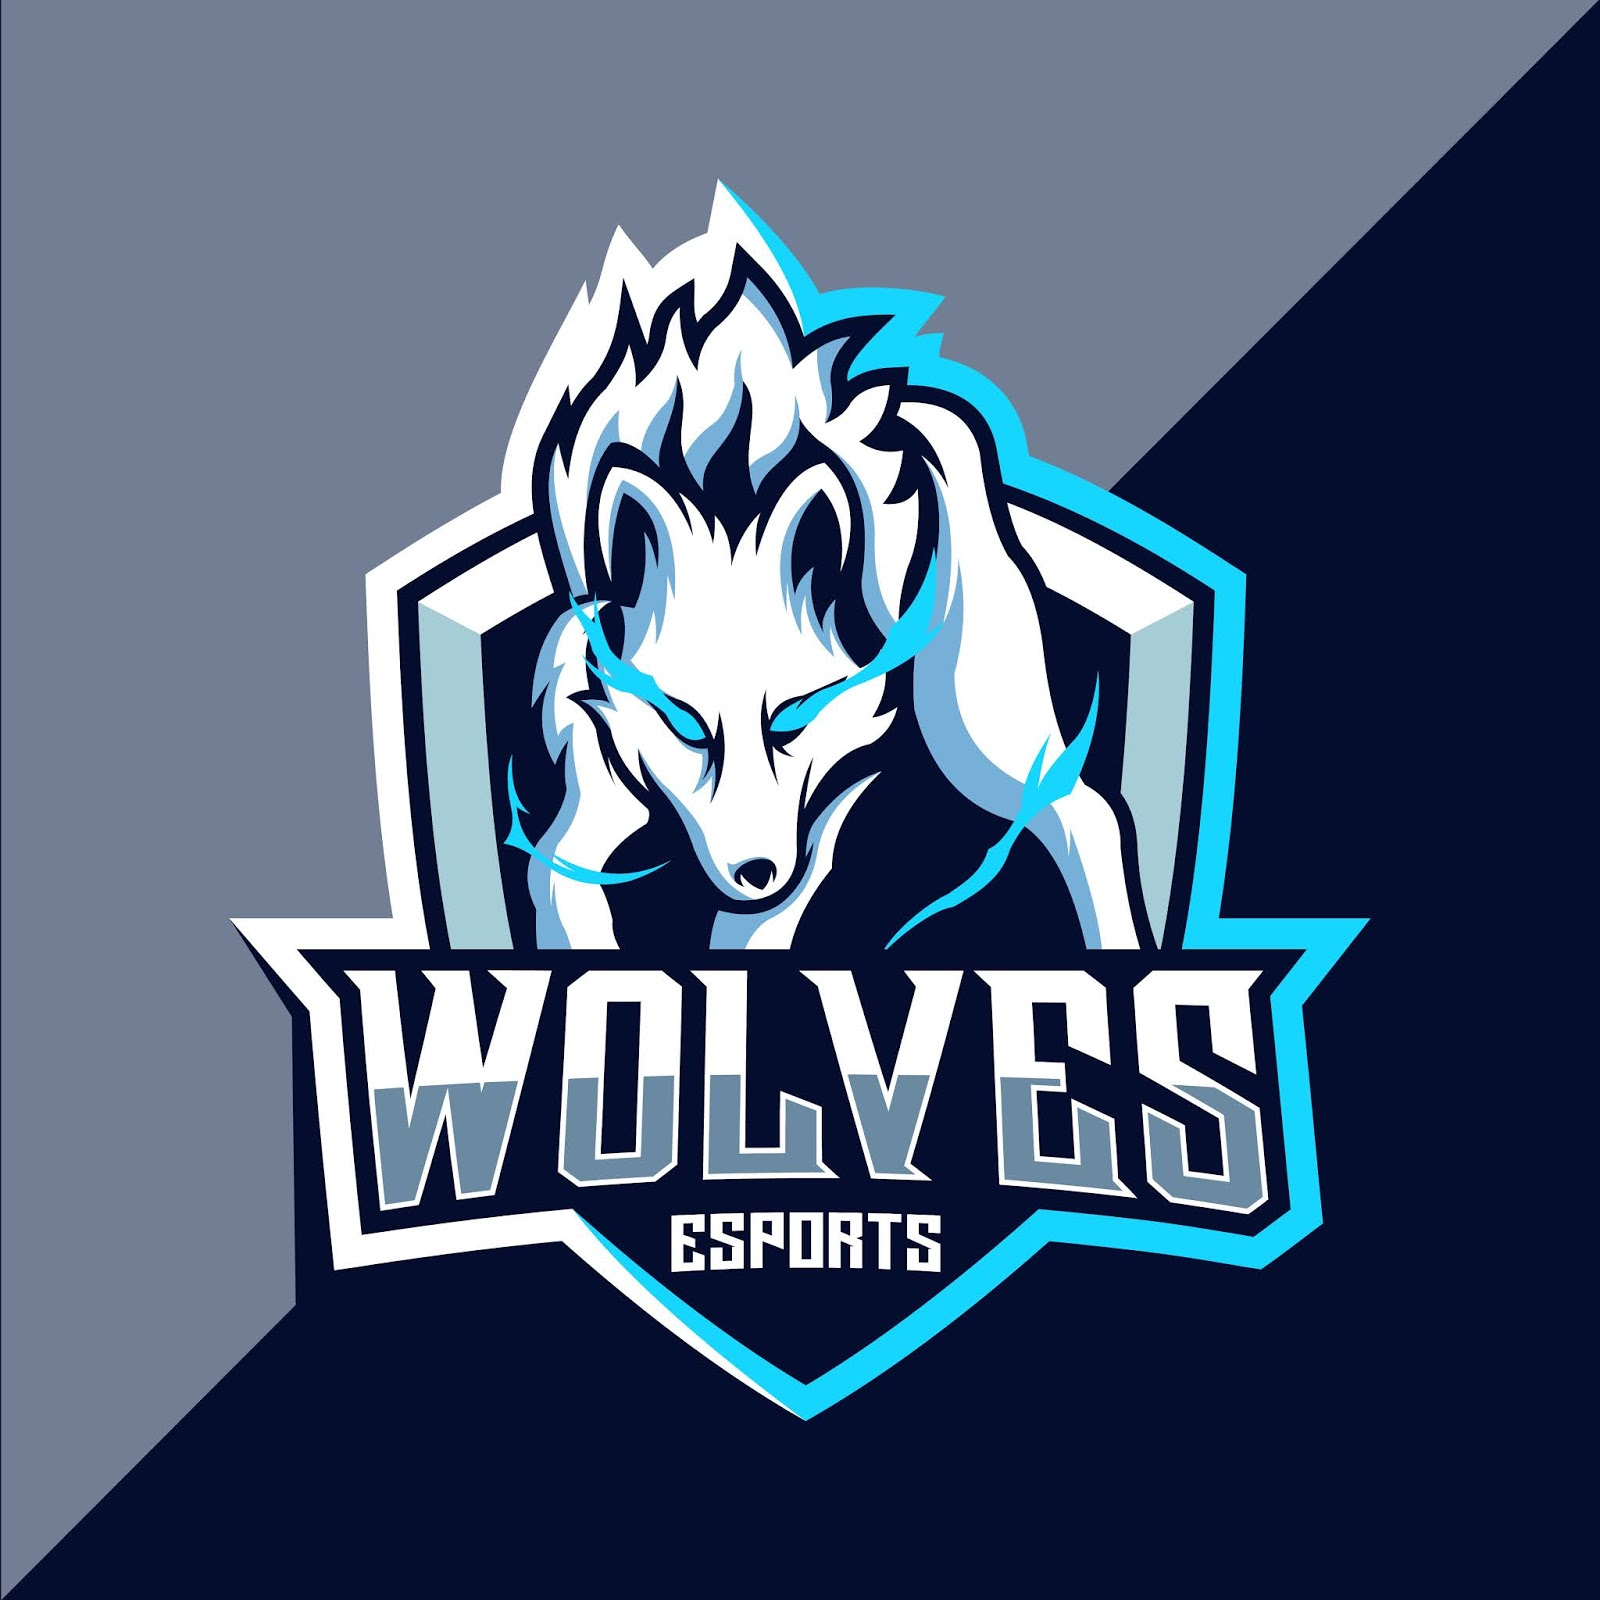 White Wolf Esport Logo Free Download Vector CDR, AI, EPS and PNG Formats